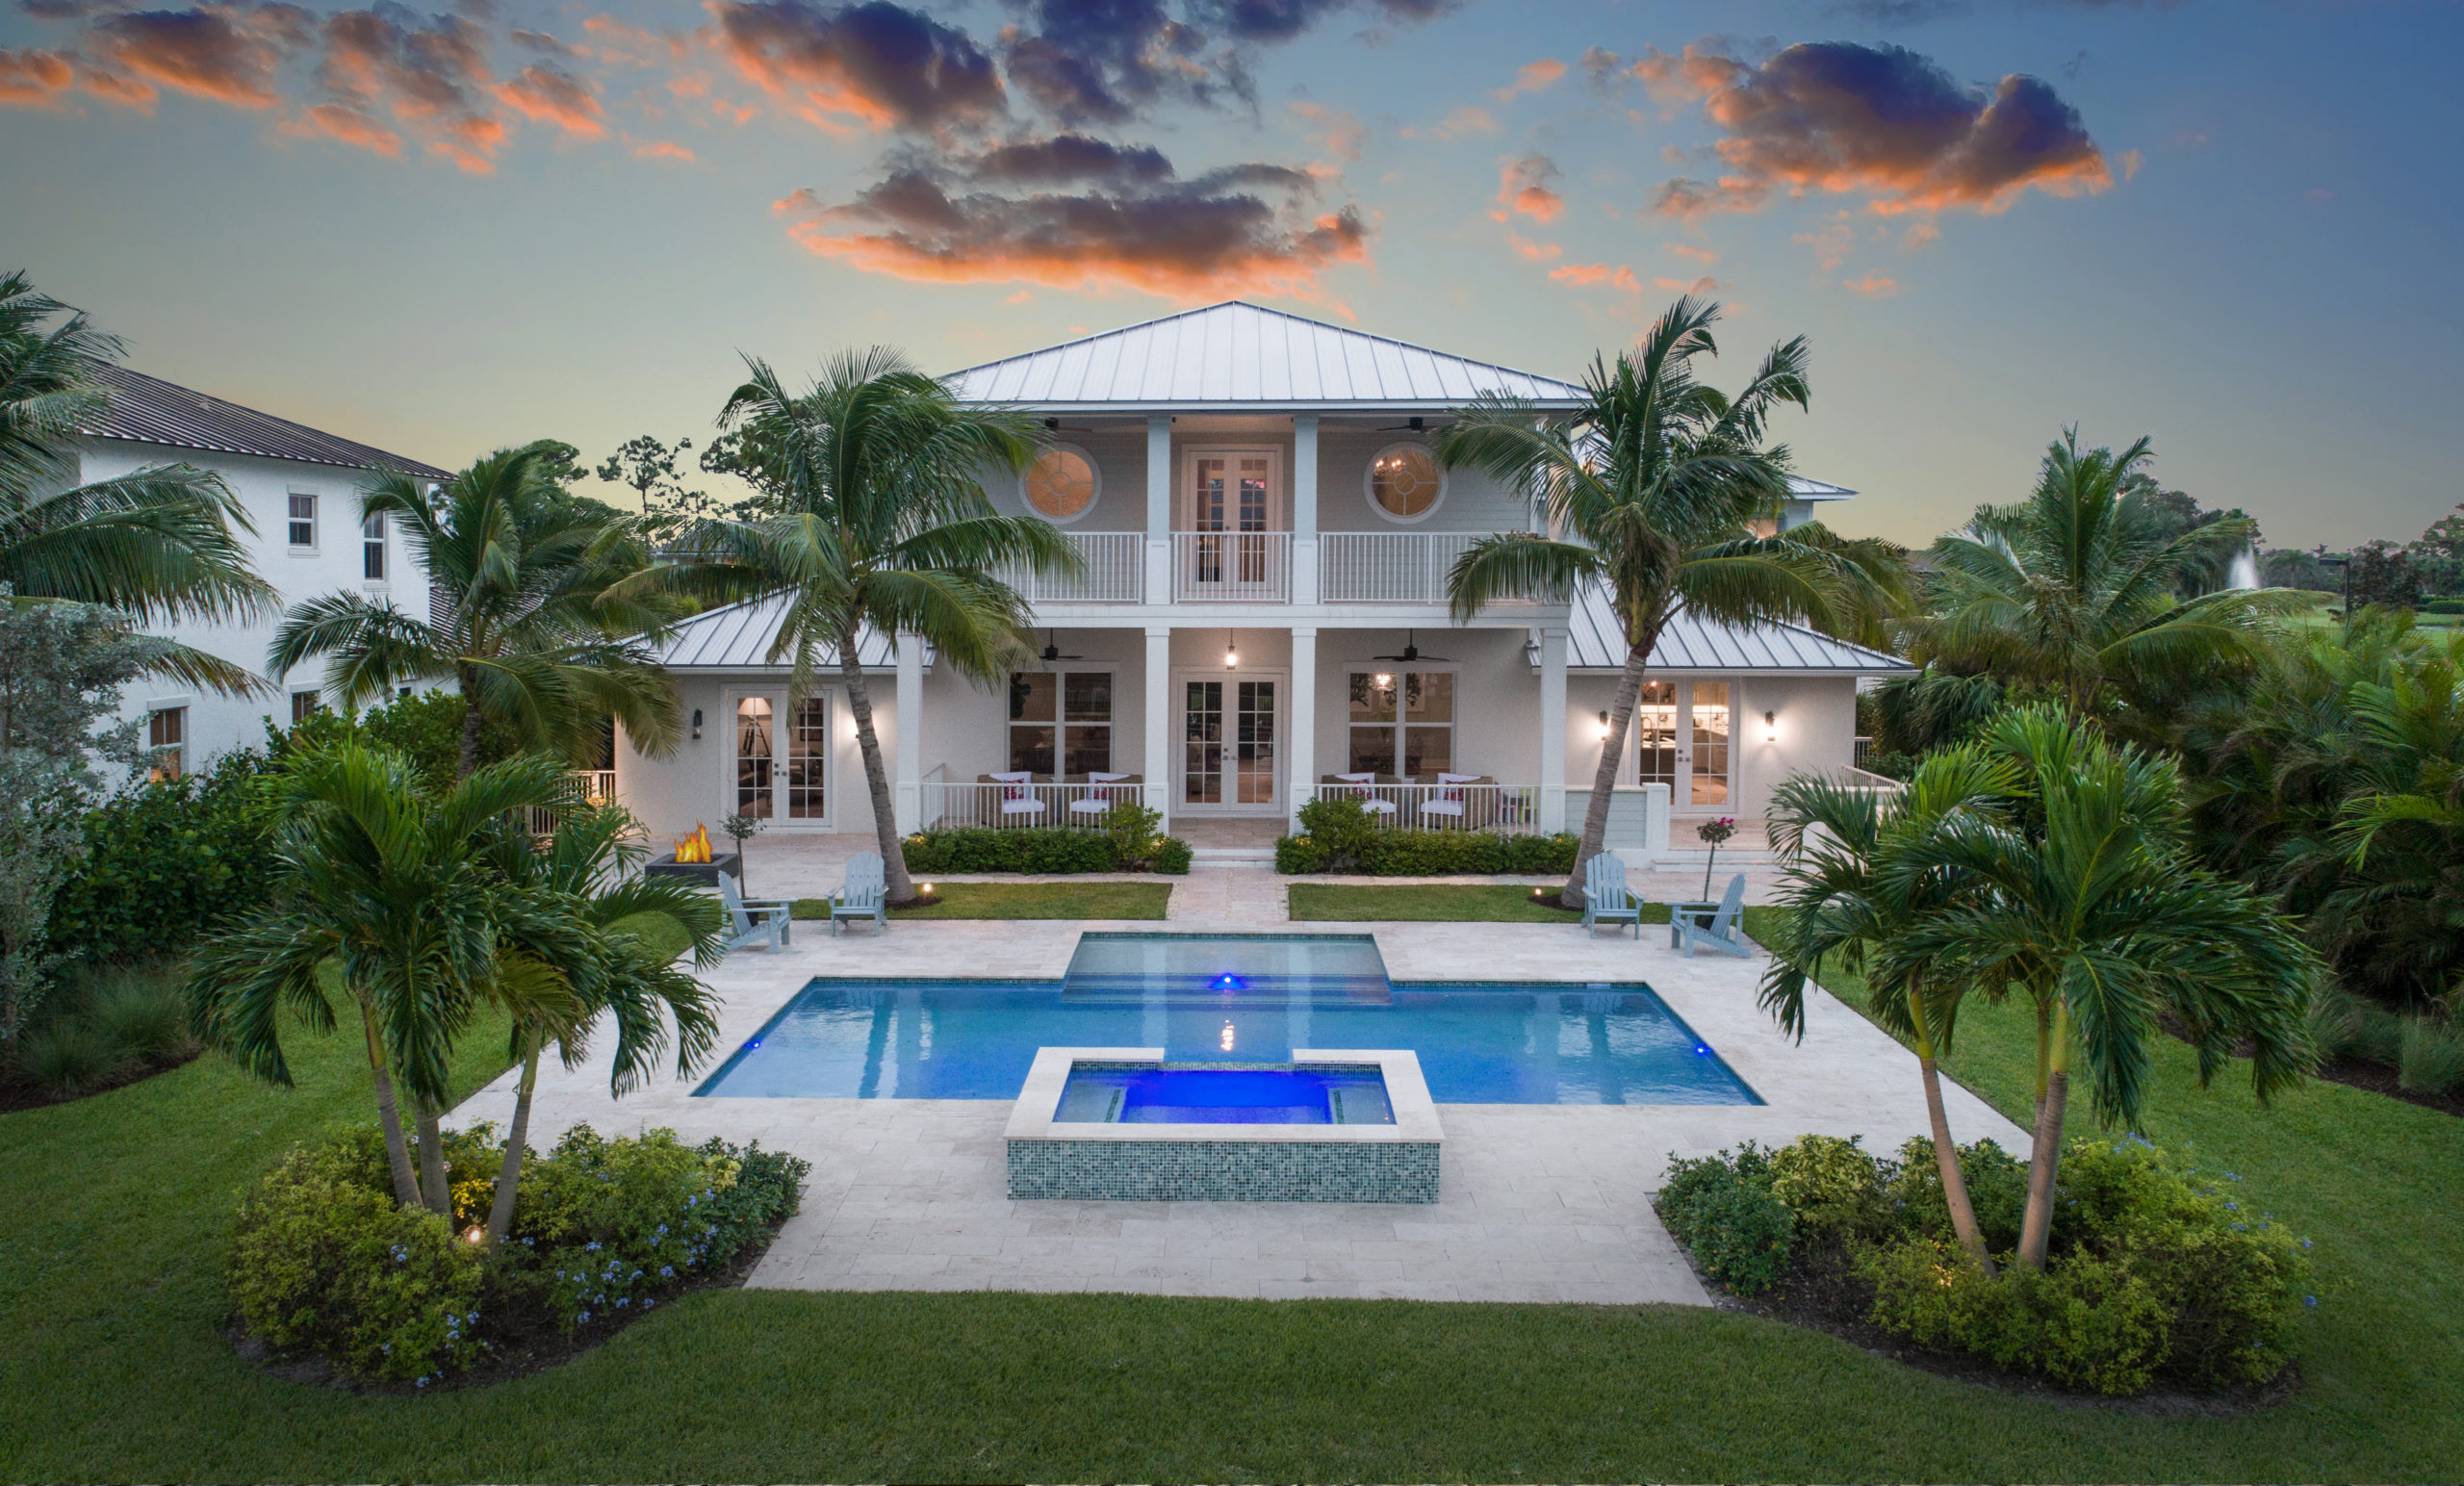 rhr pools of jupiter fl oversized step and raised spa